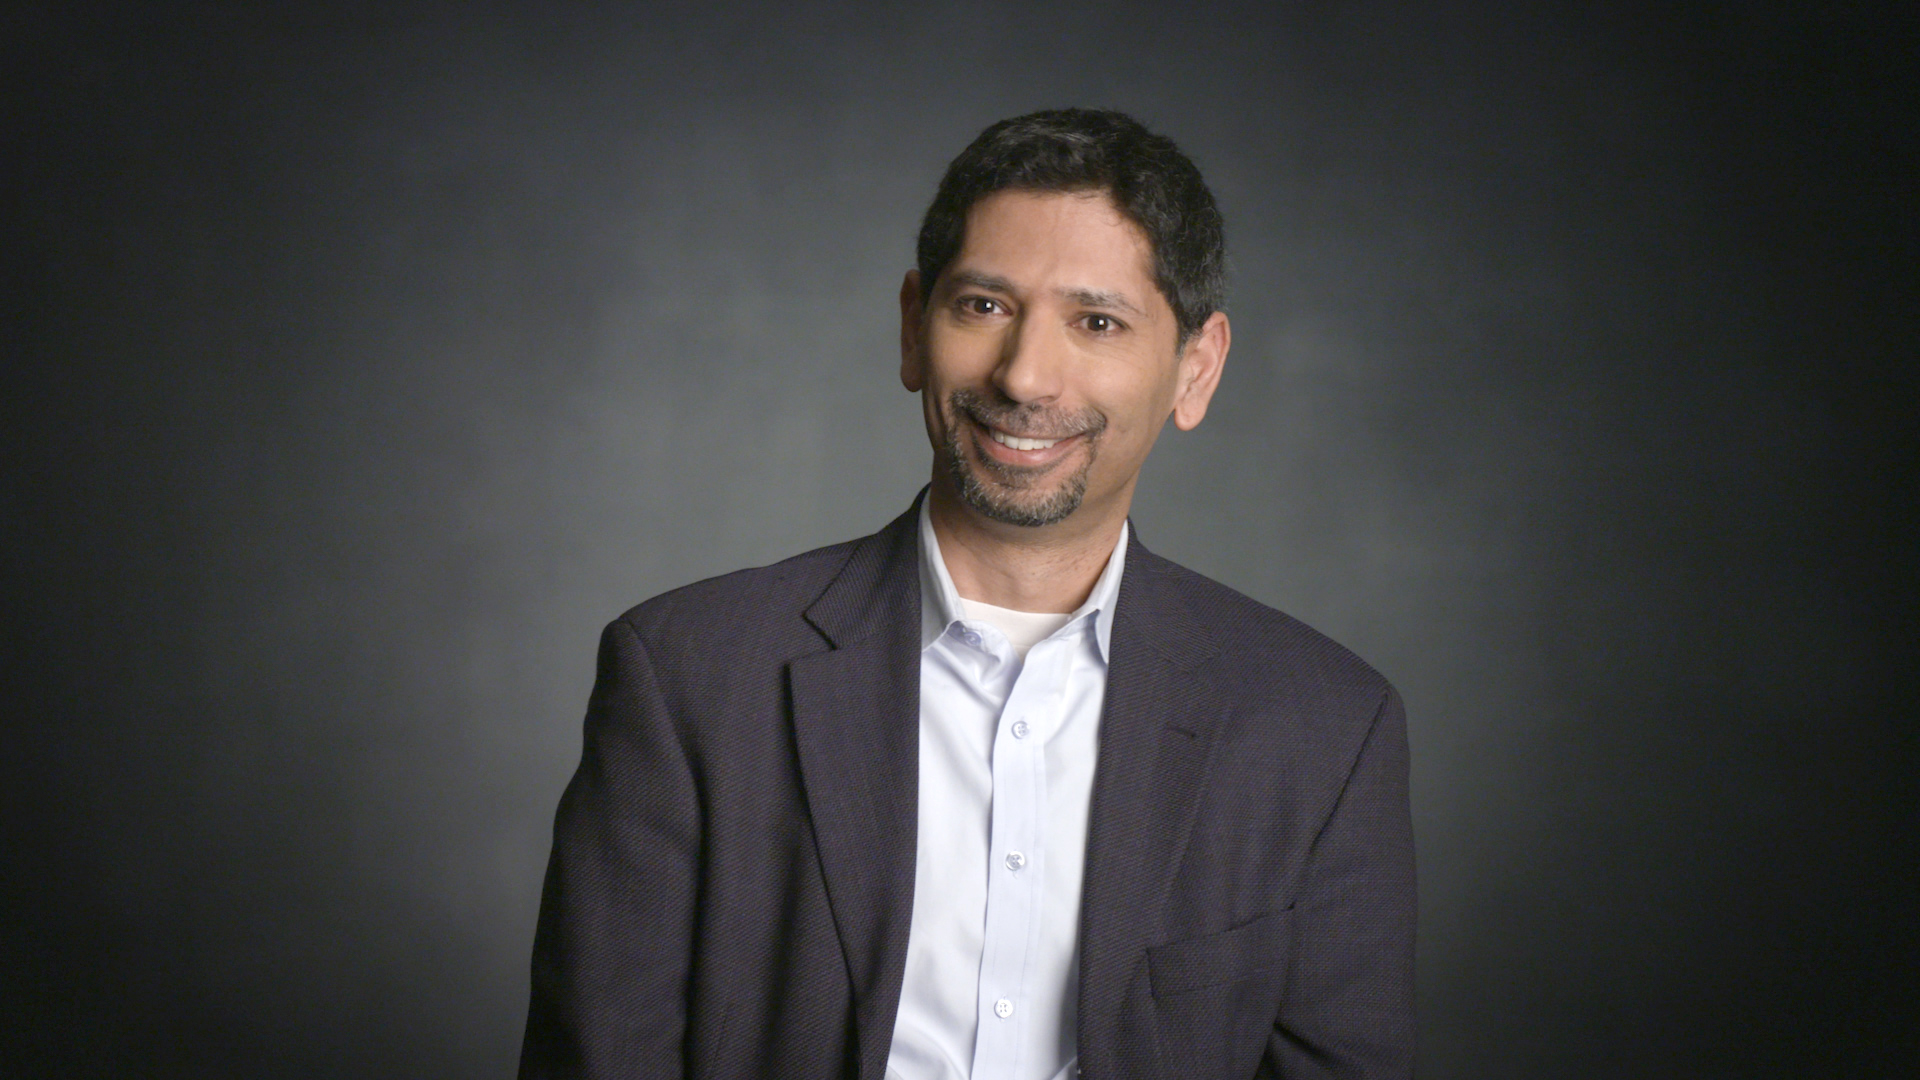 Pawan Dhingra   Sociologist at Tufts University